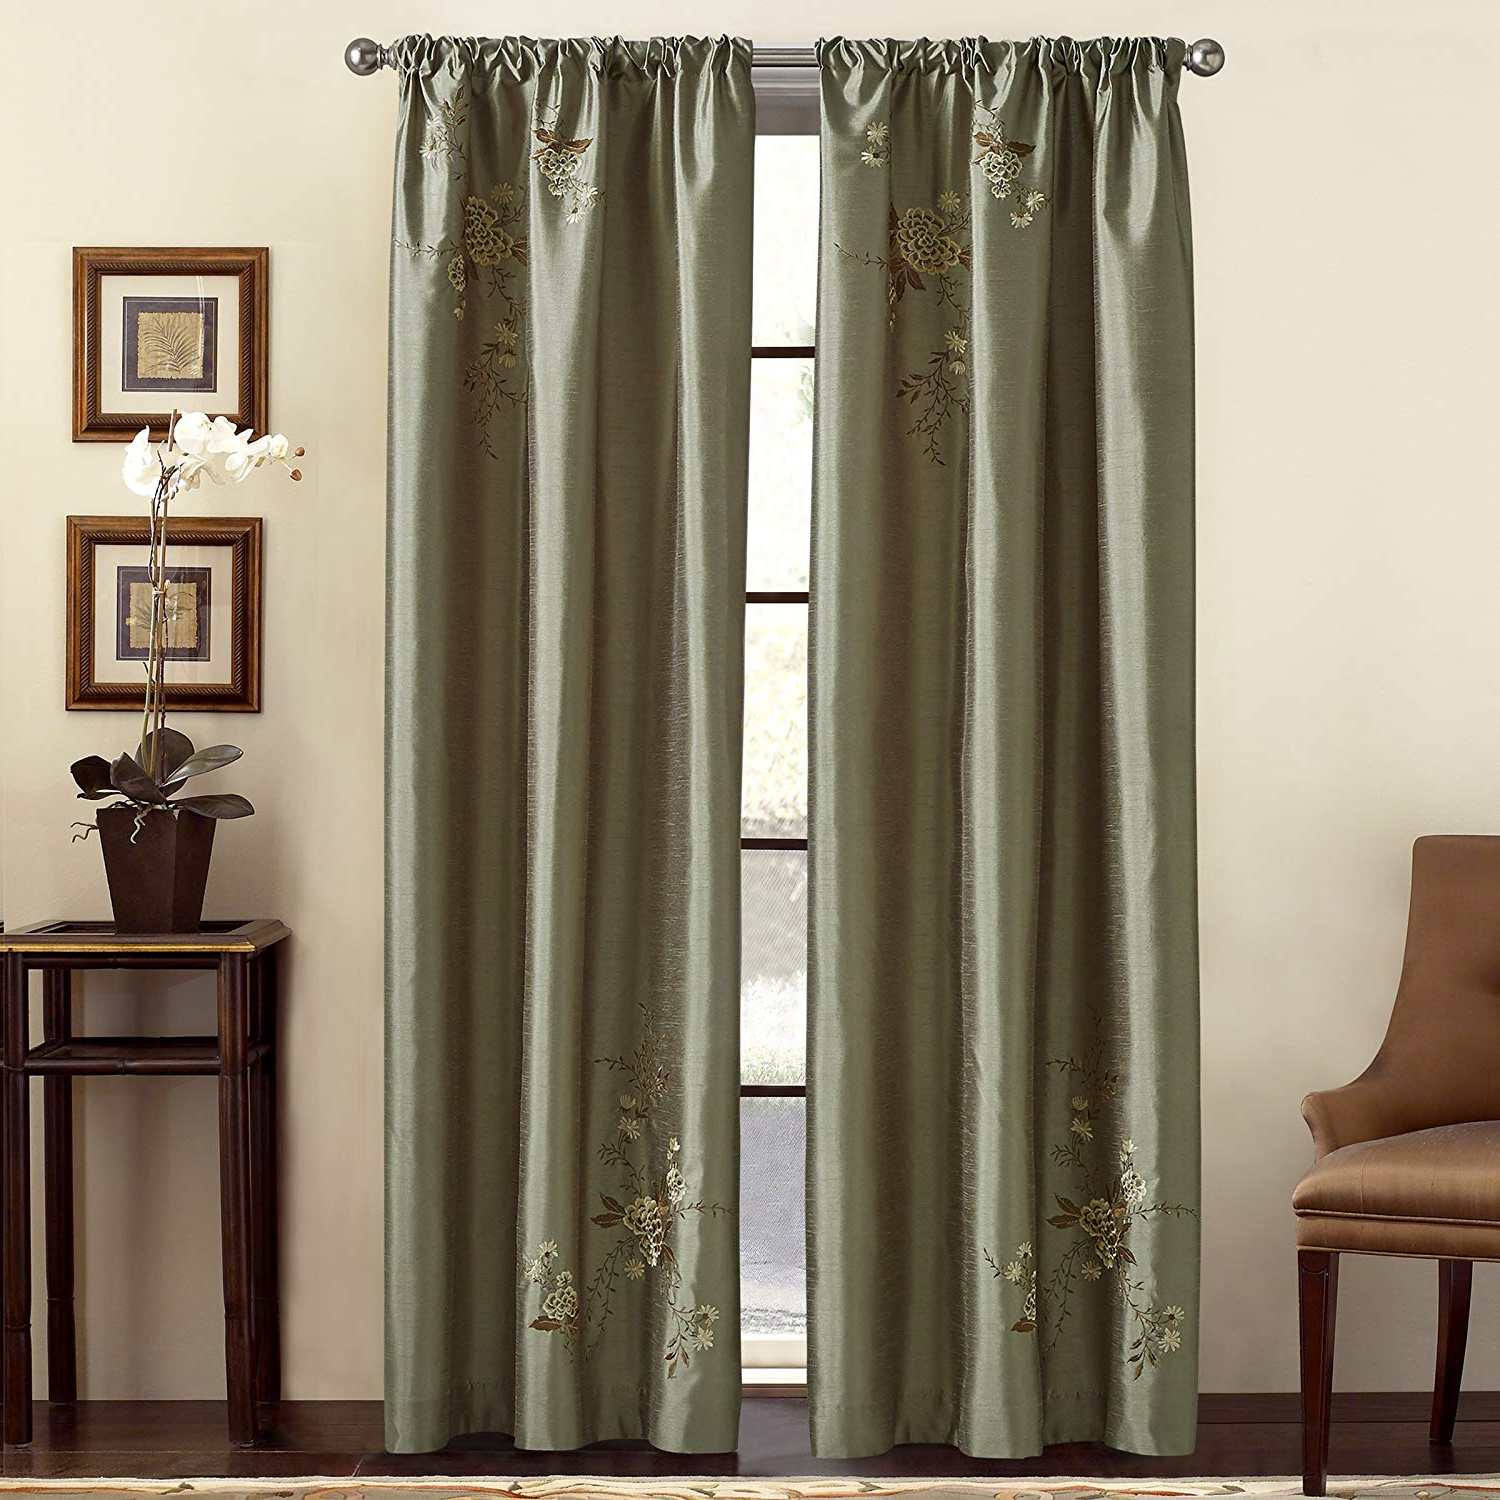 Ofloral Embroidered Faux Silk Window Curtain Panels For Preferred Chf & You Alesandra Floral Embroidered Faux Silk Window Curtain Panel, Green, 44 Inch X 84 Inch (View 6 of 20)